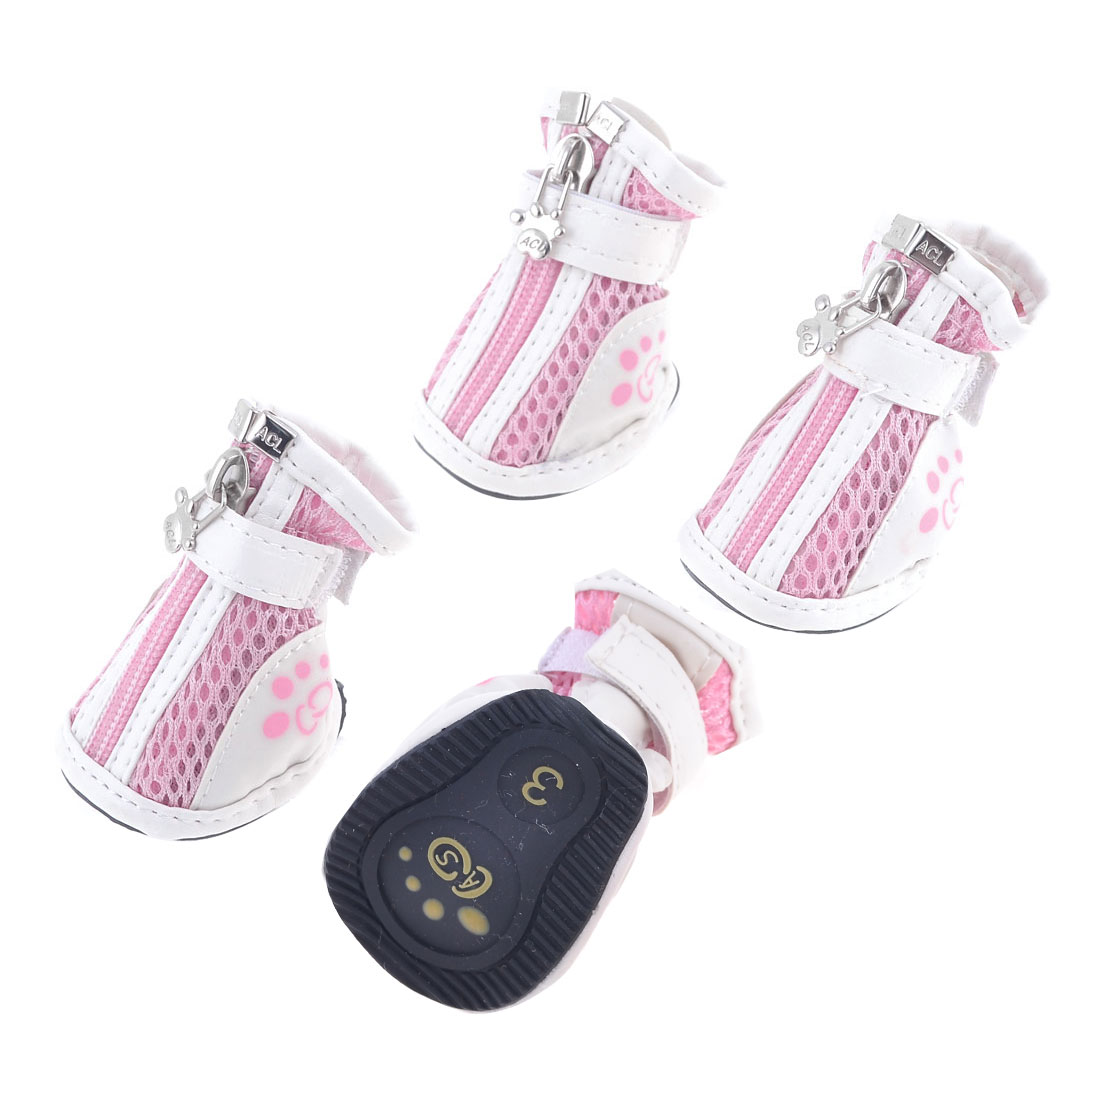 Pet Doggy Yorkie Chihuaha Zipper Closure White Pink Meshy Shoes 2 Pair S